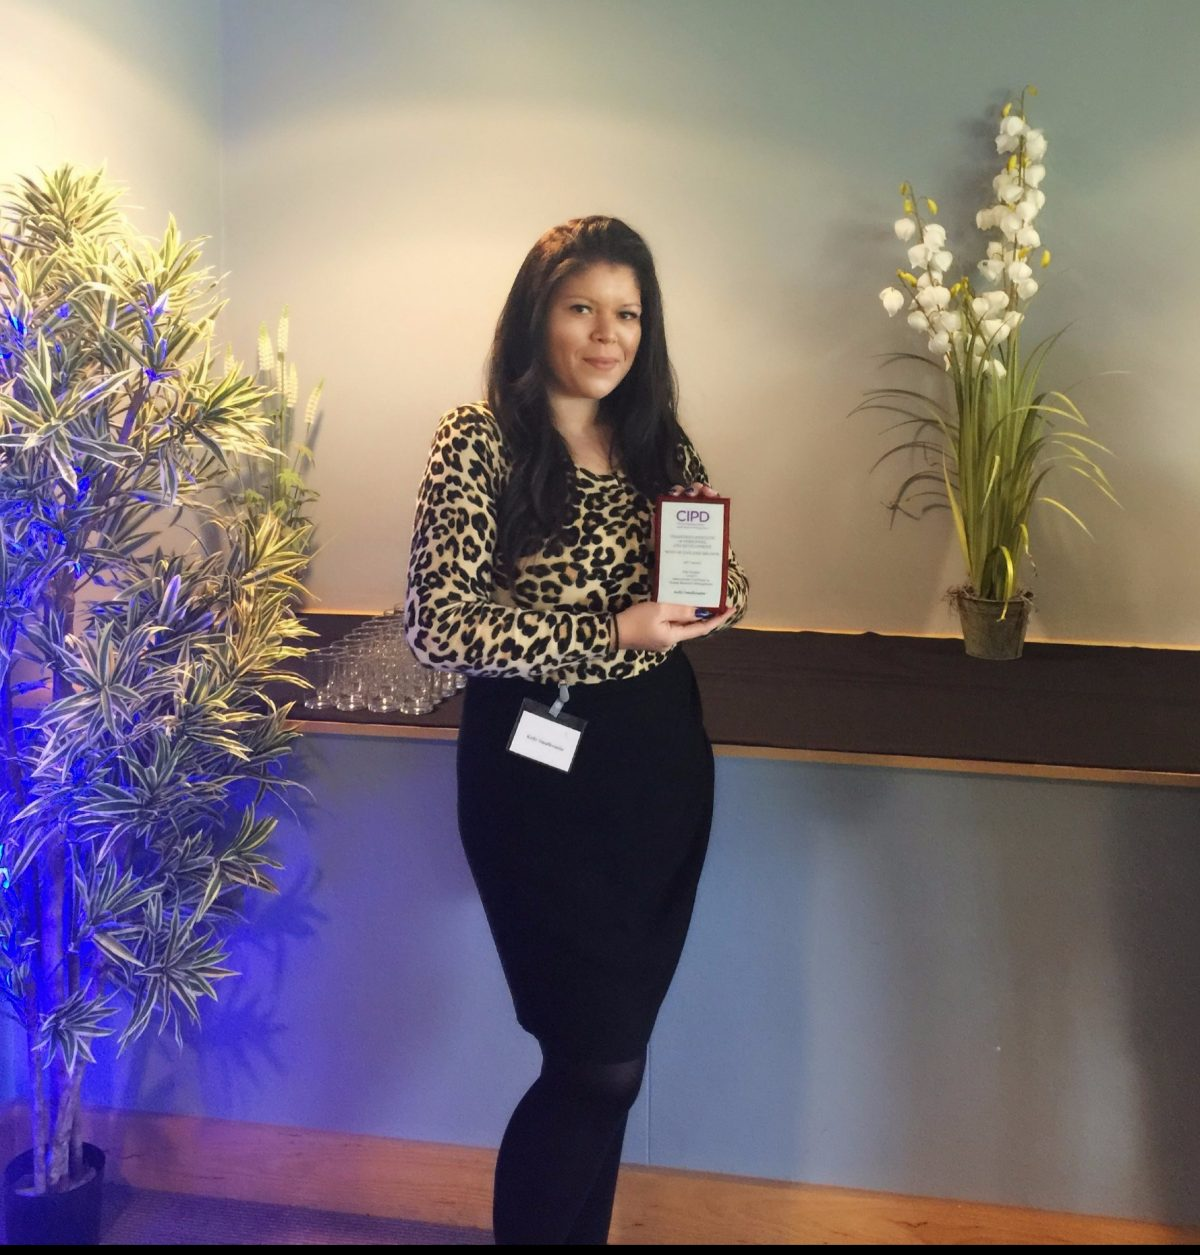 Bristol Business School student named CIPD West of England Branch Student of the Year